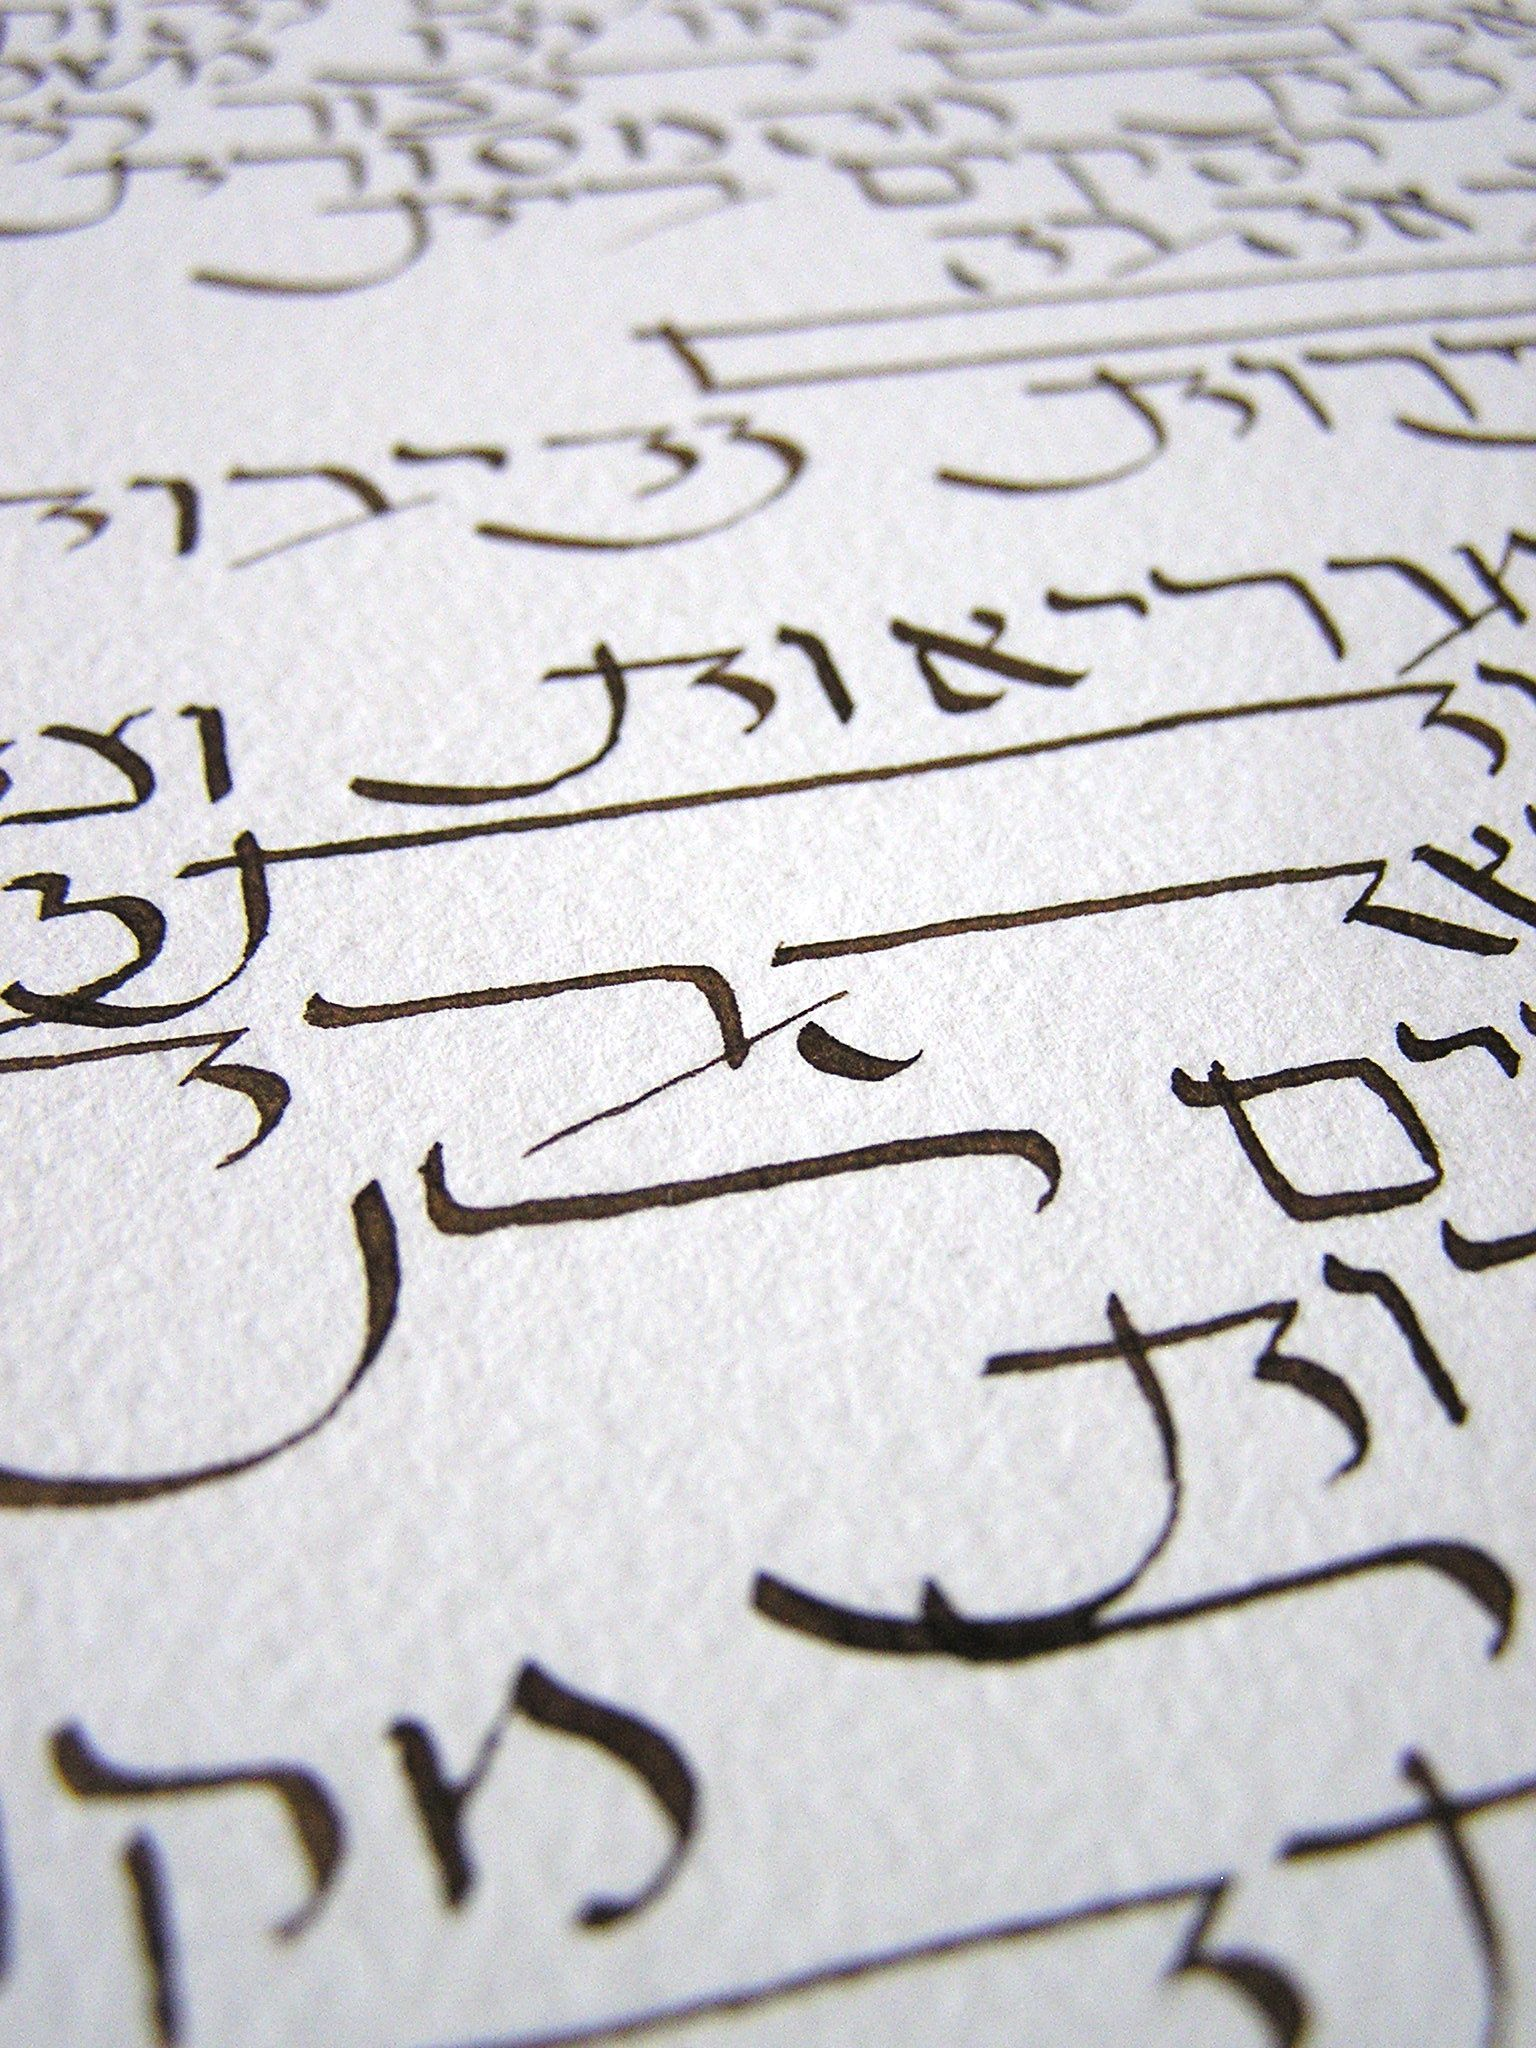 Arteriole Calligraphy Ink Pen Hebrew With Images